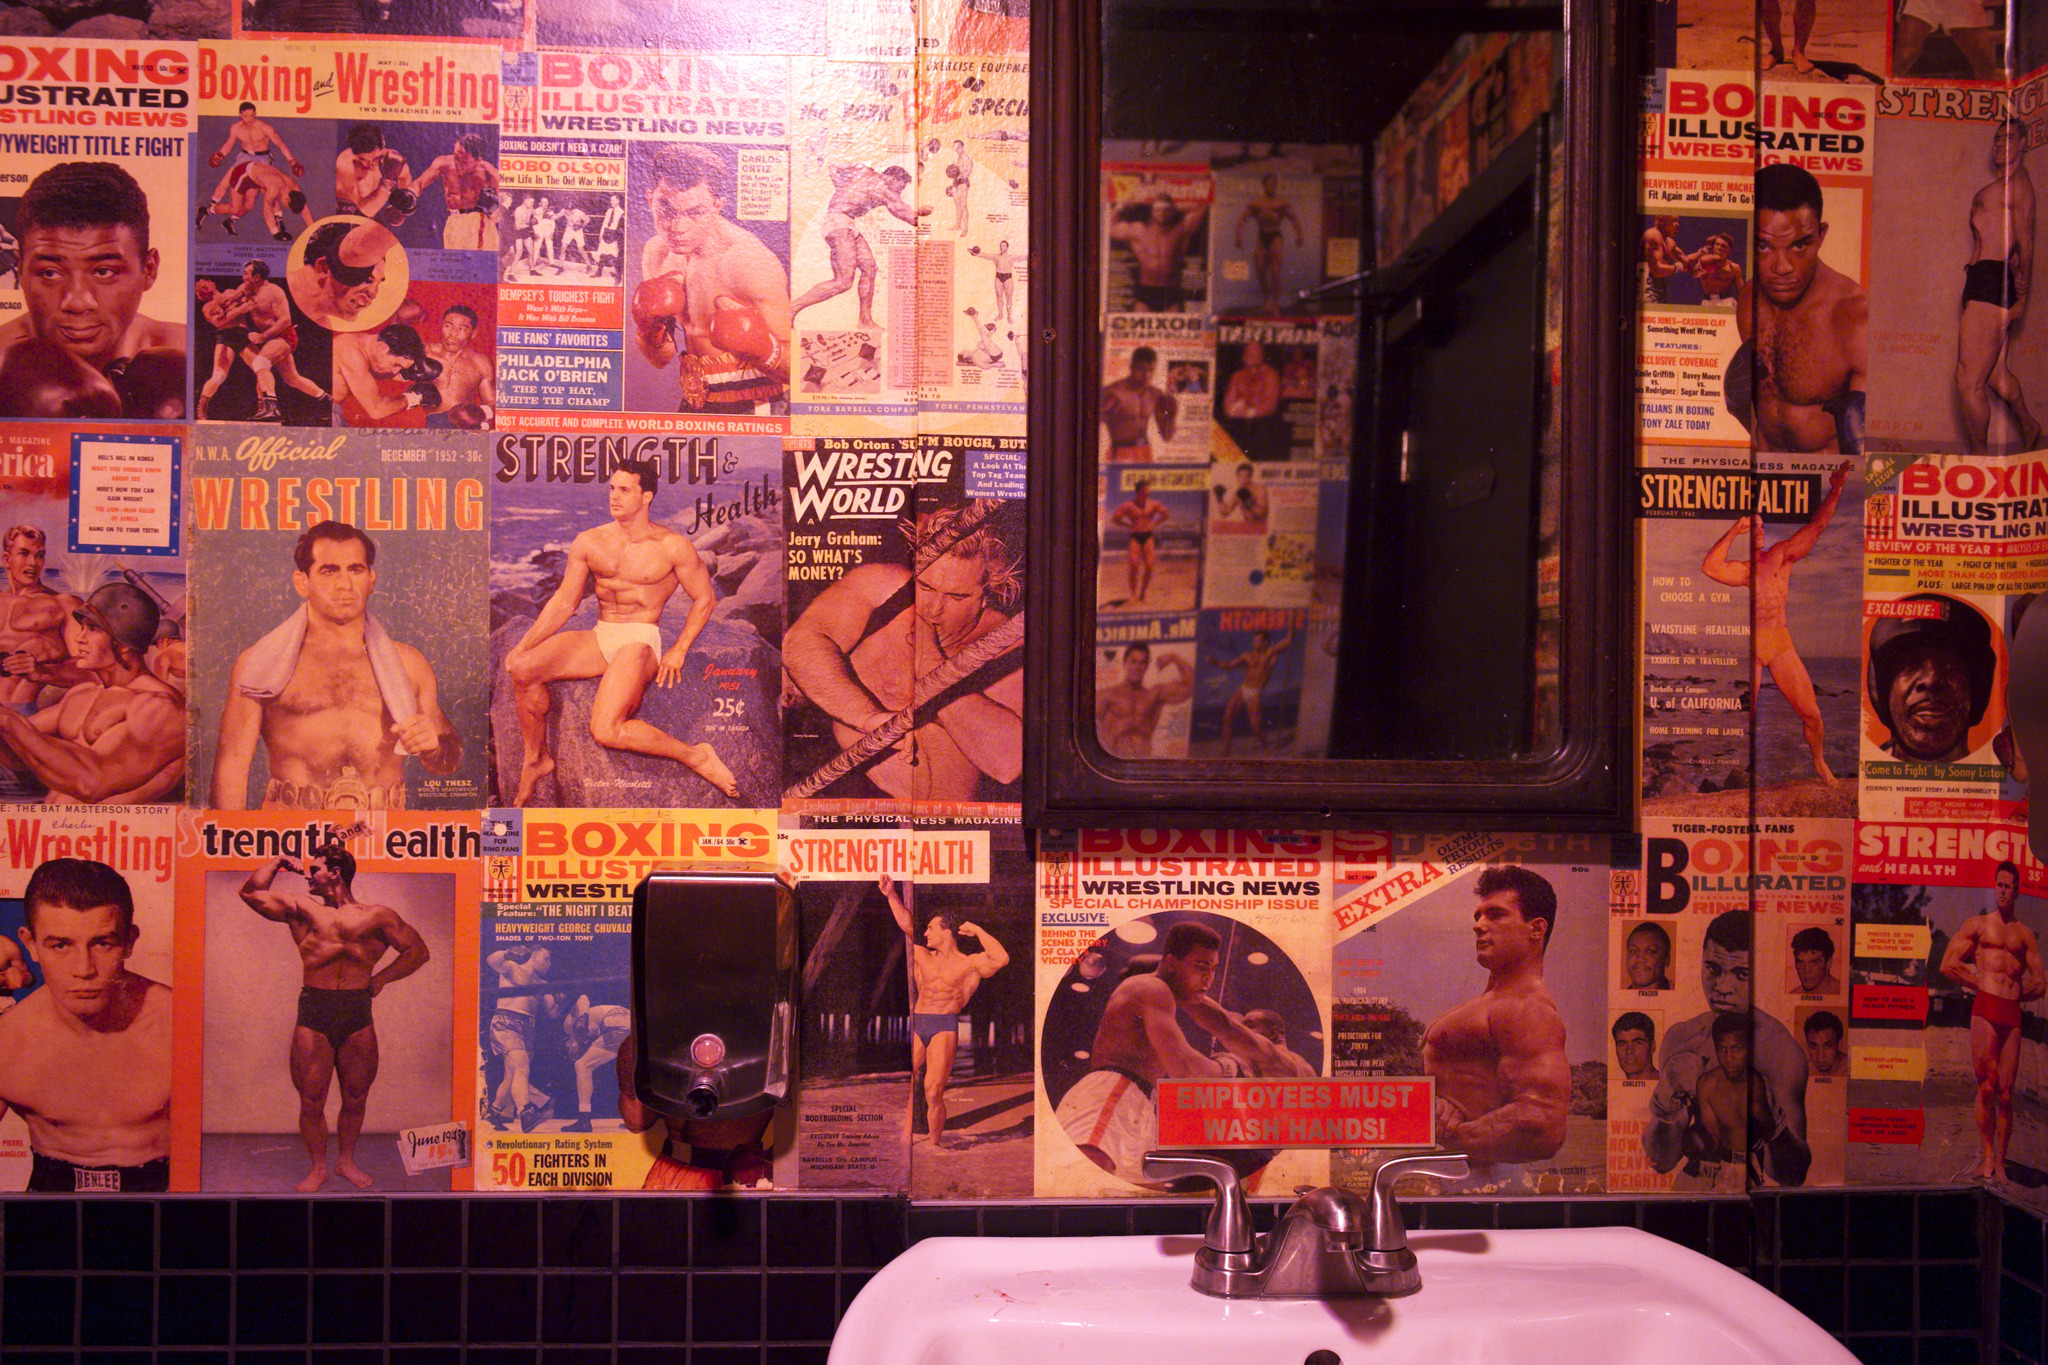 Best new bathrooms: Atlas Social Club